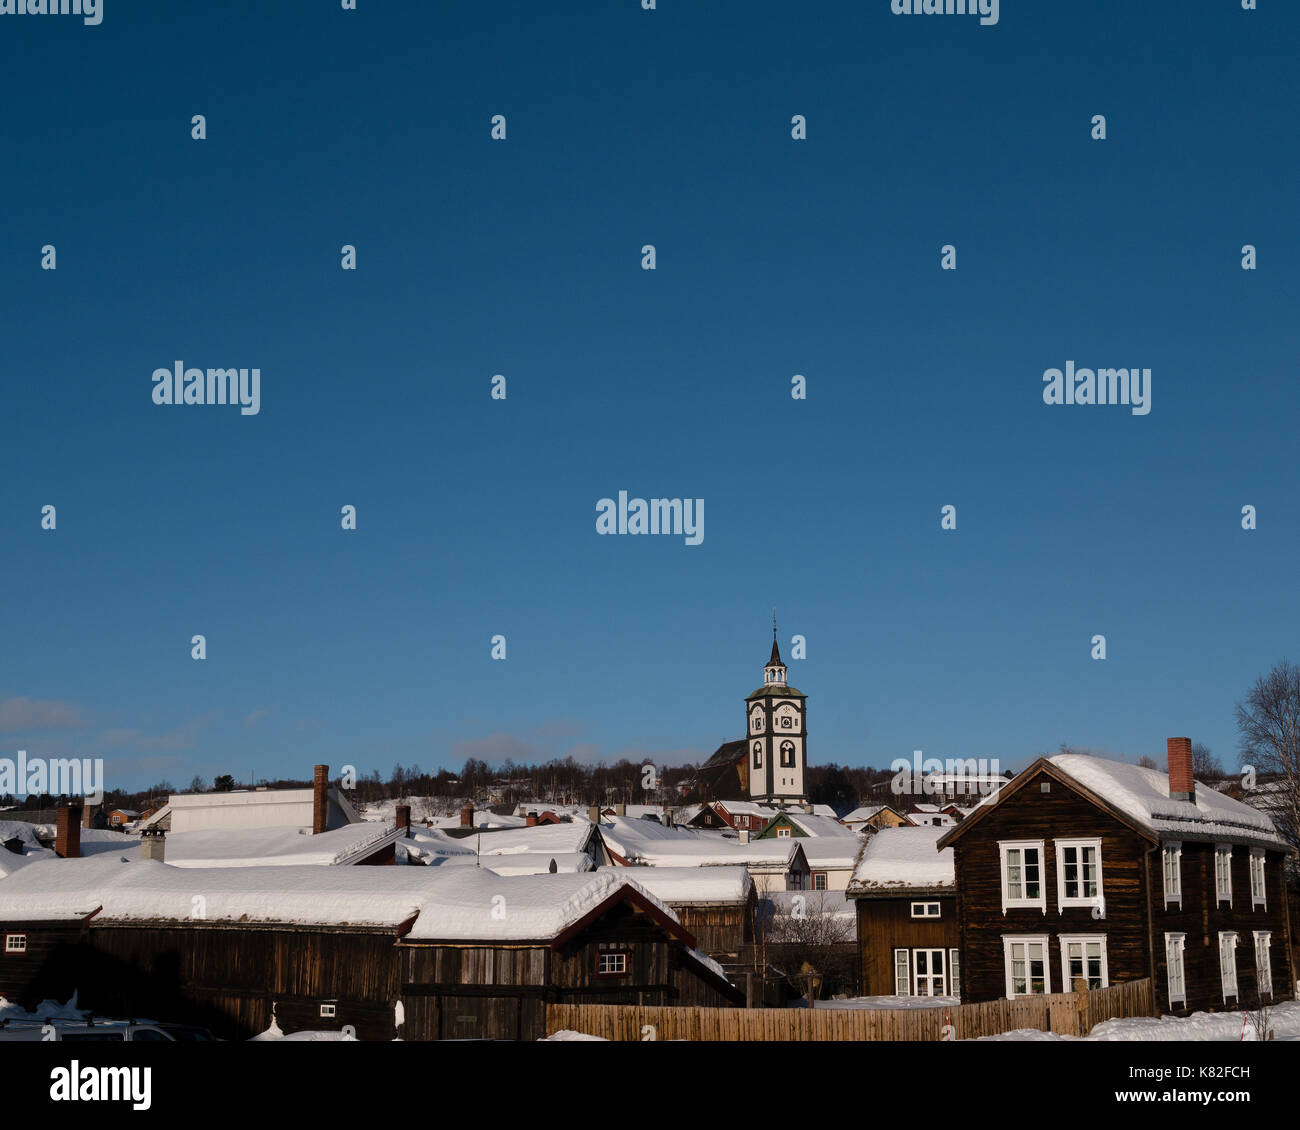 Church of Röros overlooking the old historic city center. - Stock Image